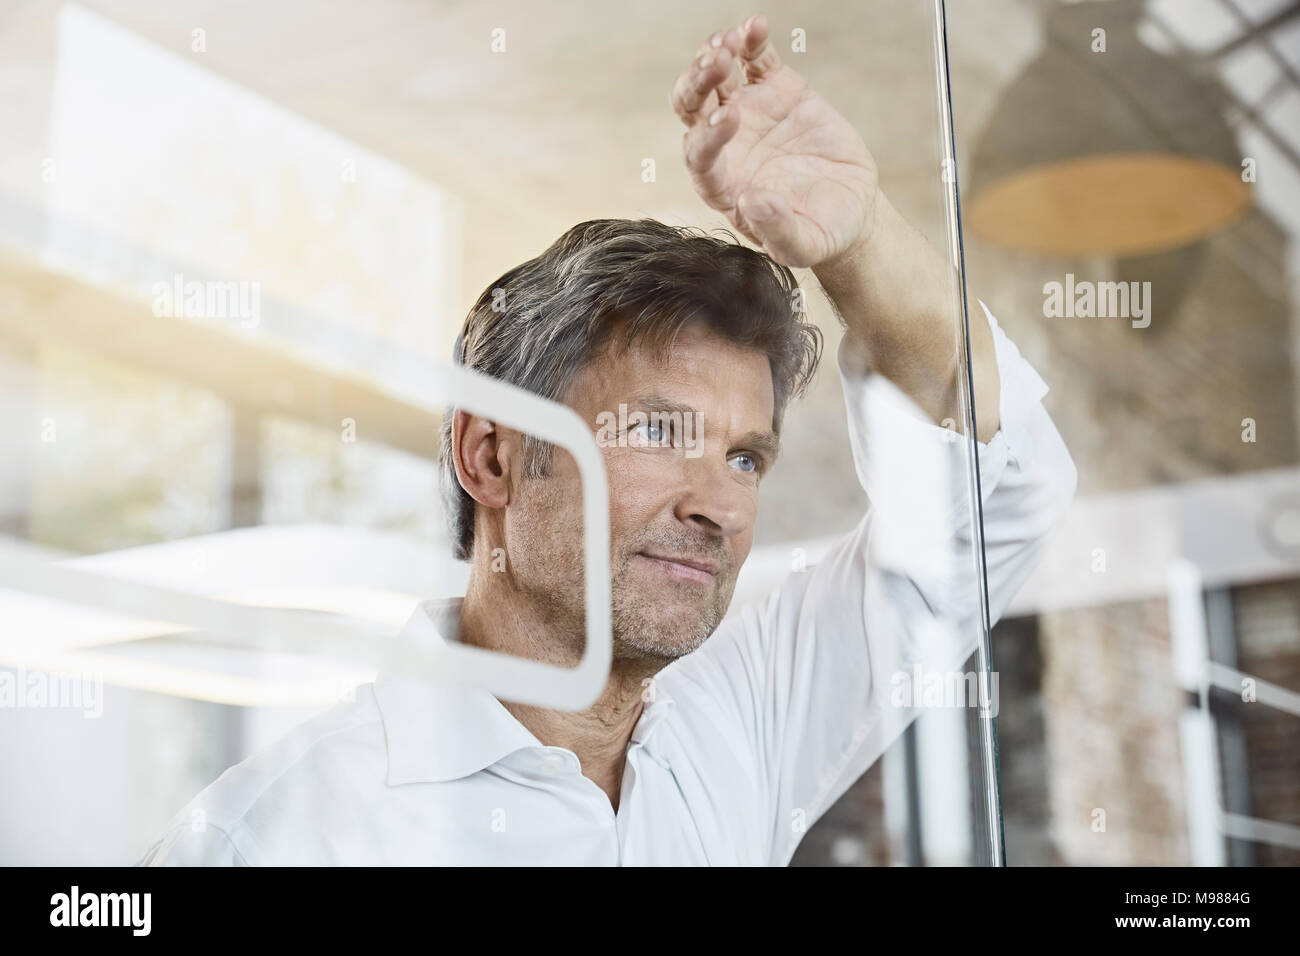 Portrait of mature businessman leaning against glass wall in office - Stock Image